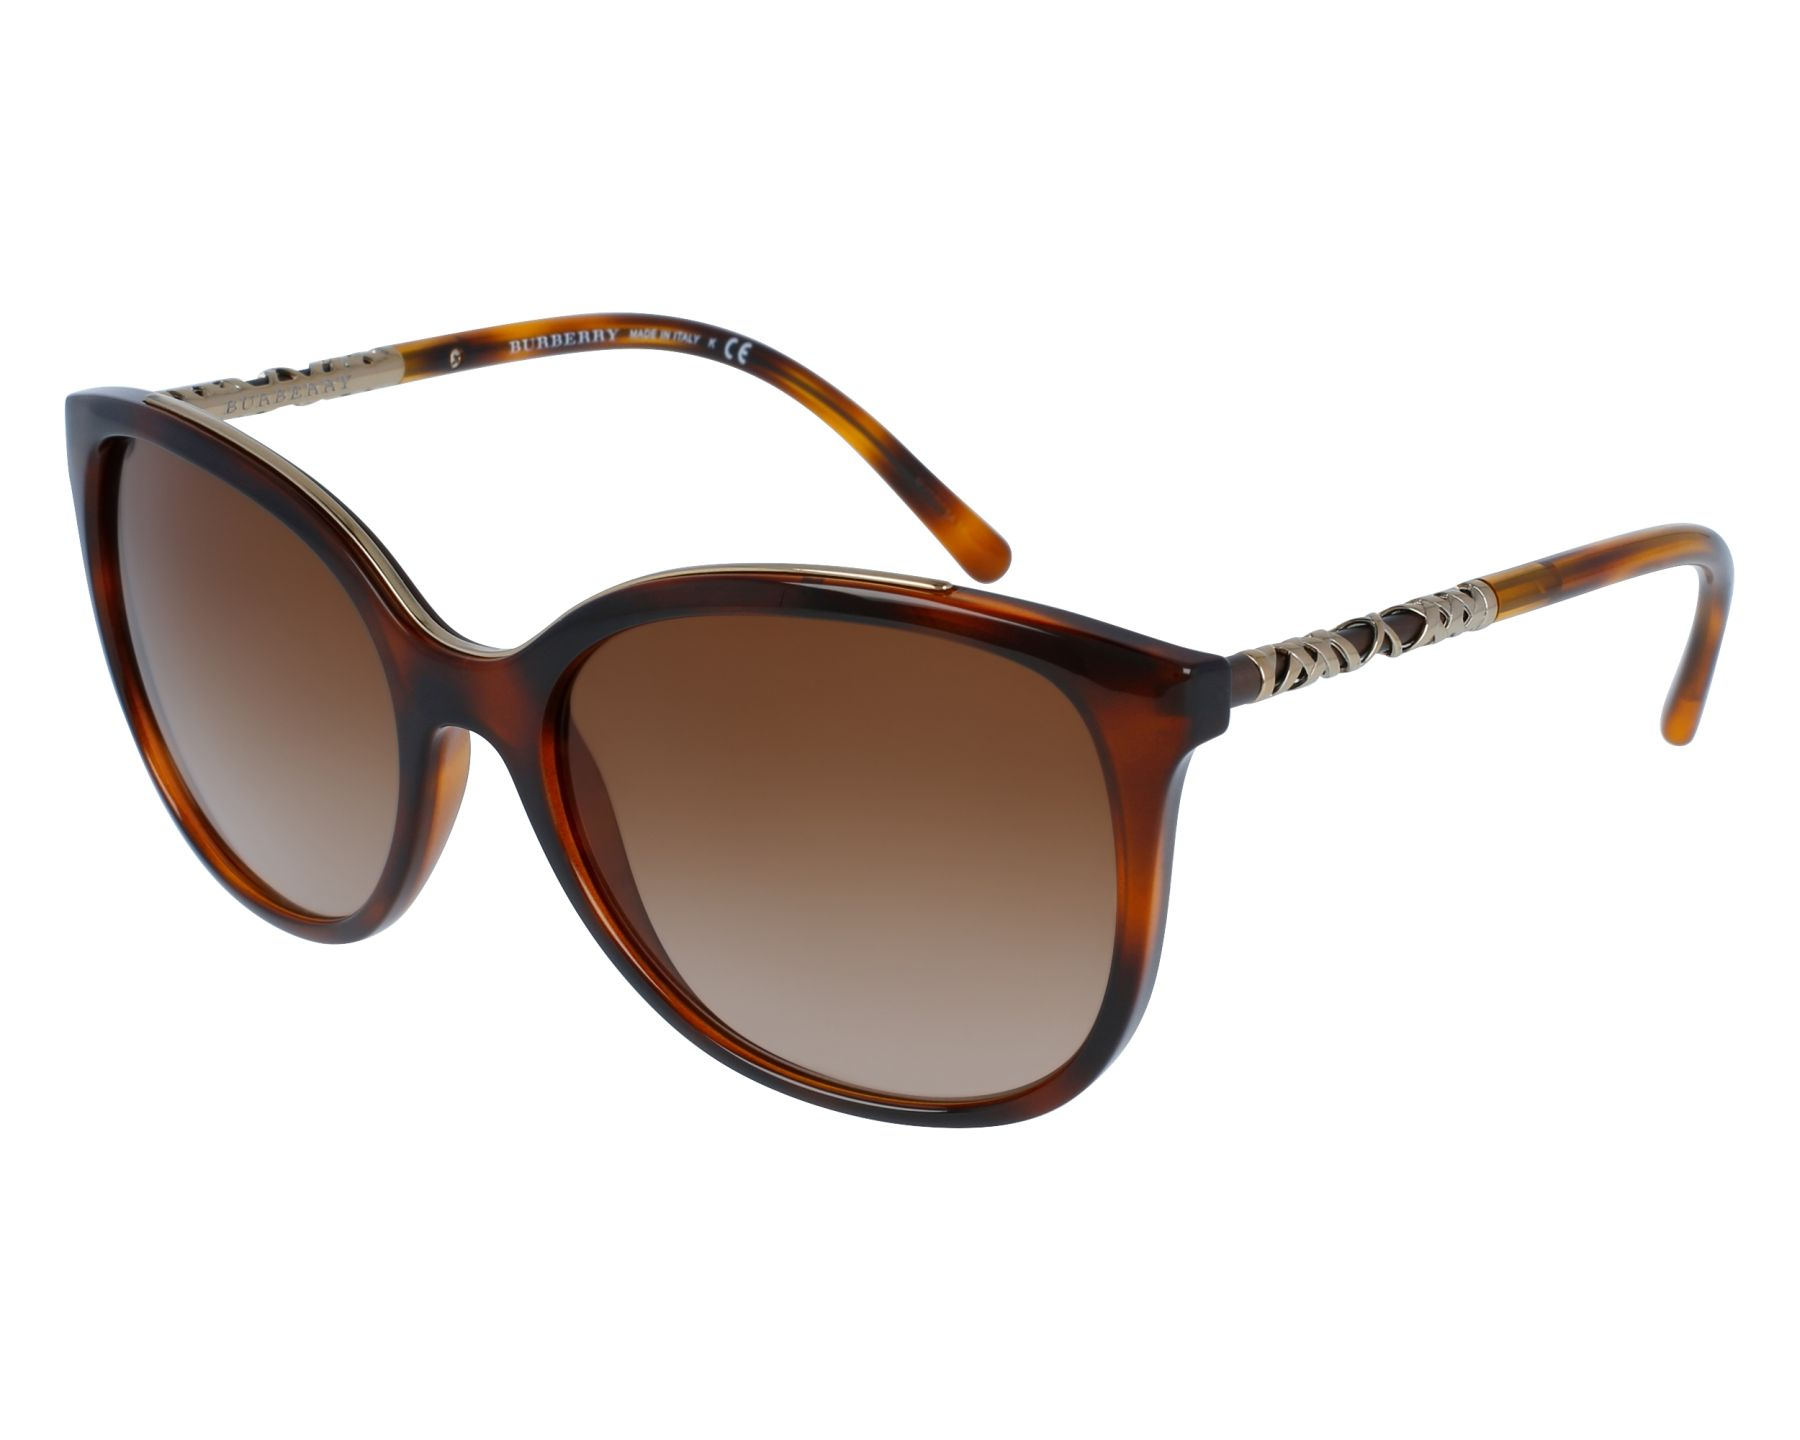 Sunglasses Burberry BE-4237 3316/13 57-18 Havana Gold front view